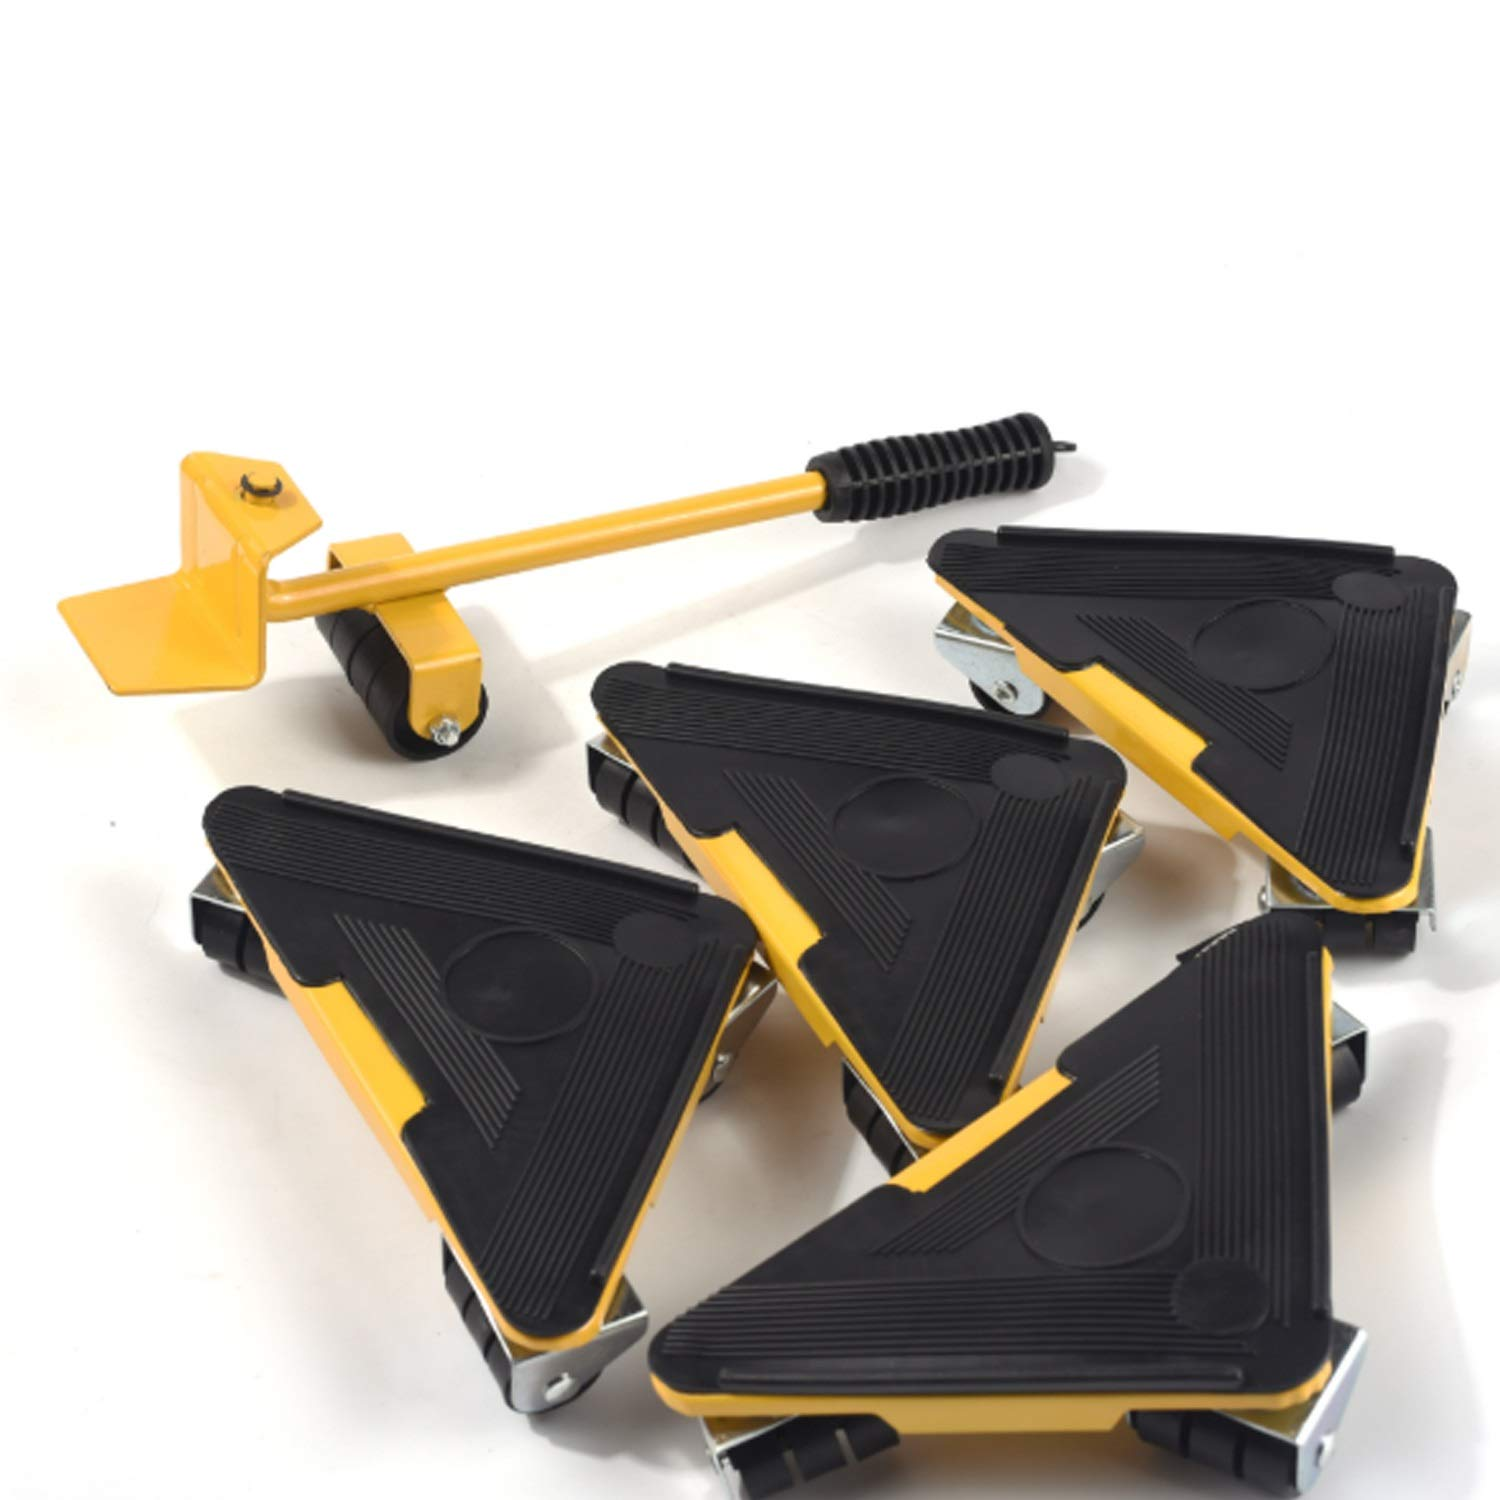 Your only family Practical Can Bear 400-500KG Triangular Moving Device Triangle Iron Mover with Universal Wheel Movable Portable Easy to Move Heavy Goods and Furniture Durable (Color : Yellow) by Your only family (Image #2)